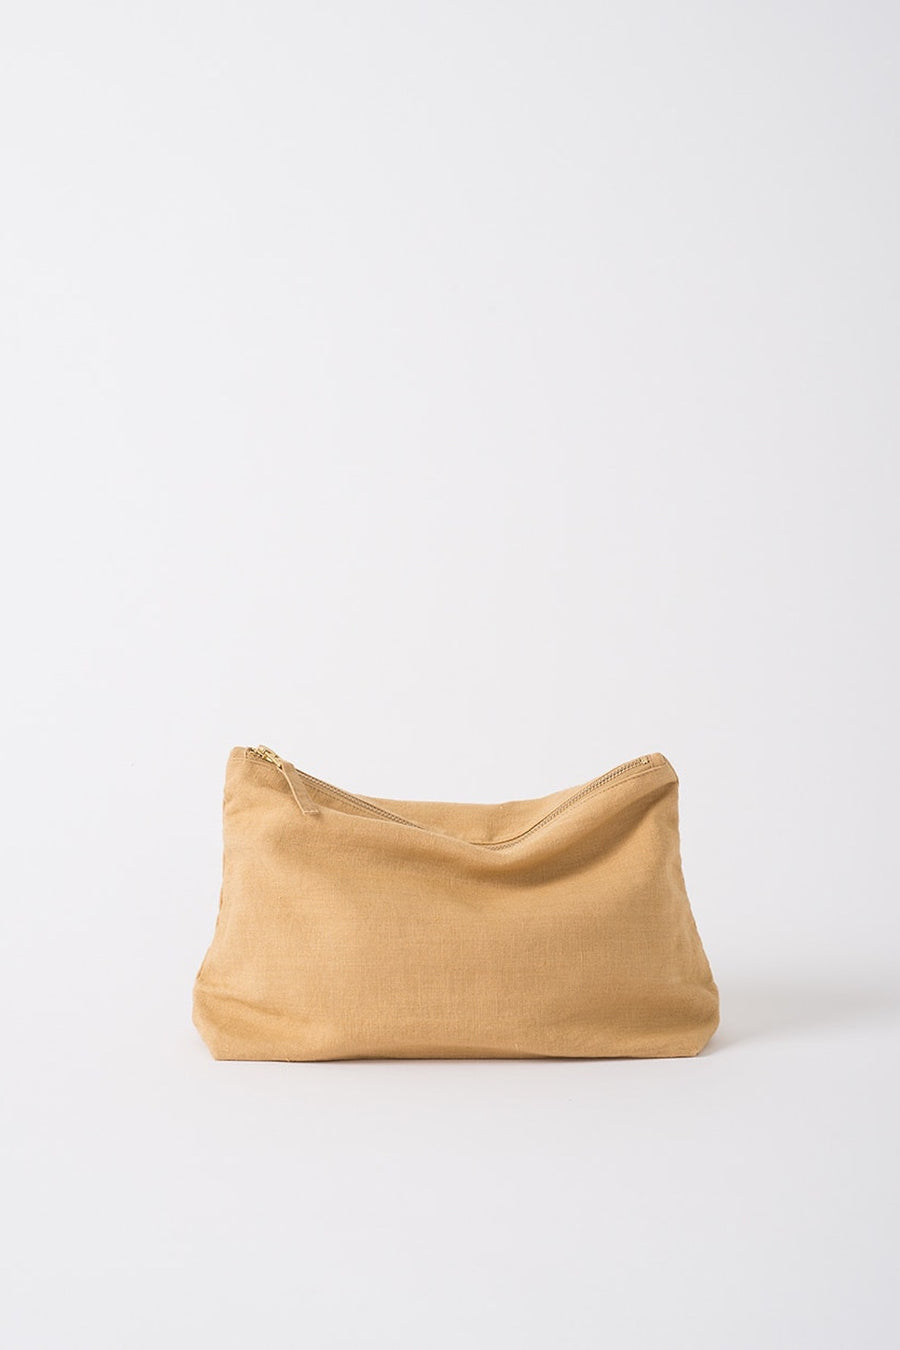 Linen Wash Bag - Citron - Shop Online At Mookah - mookah.com.au